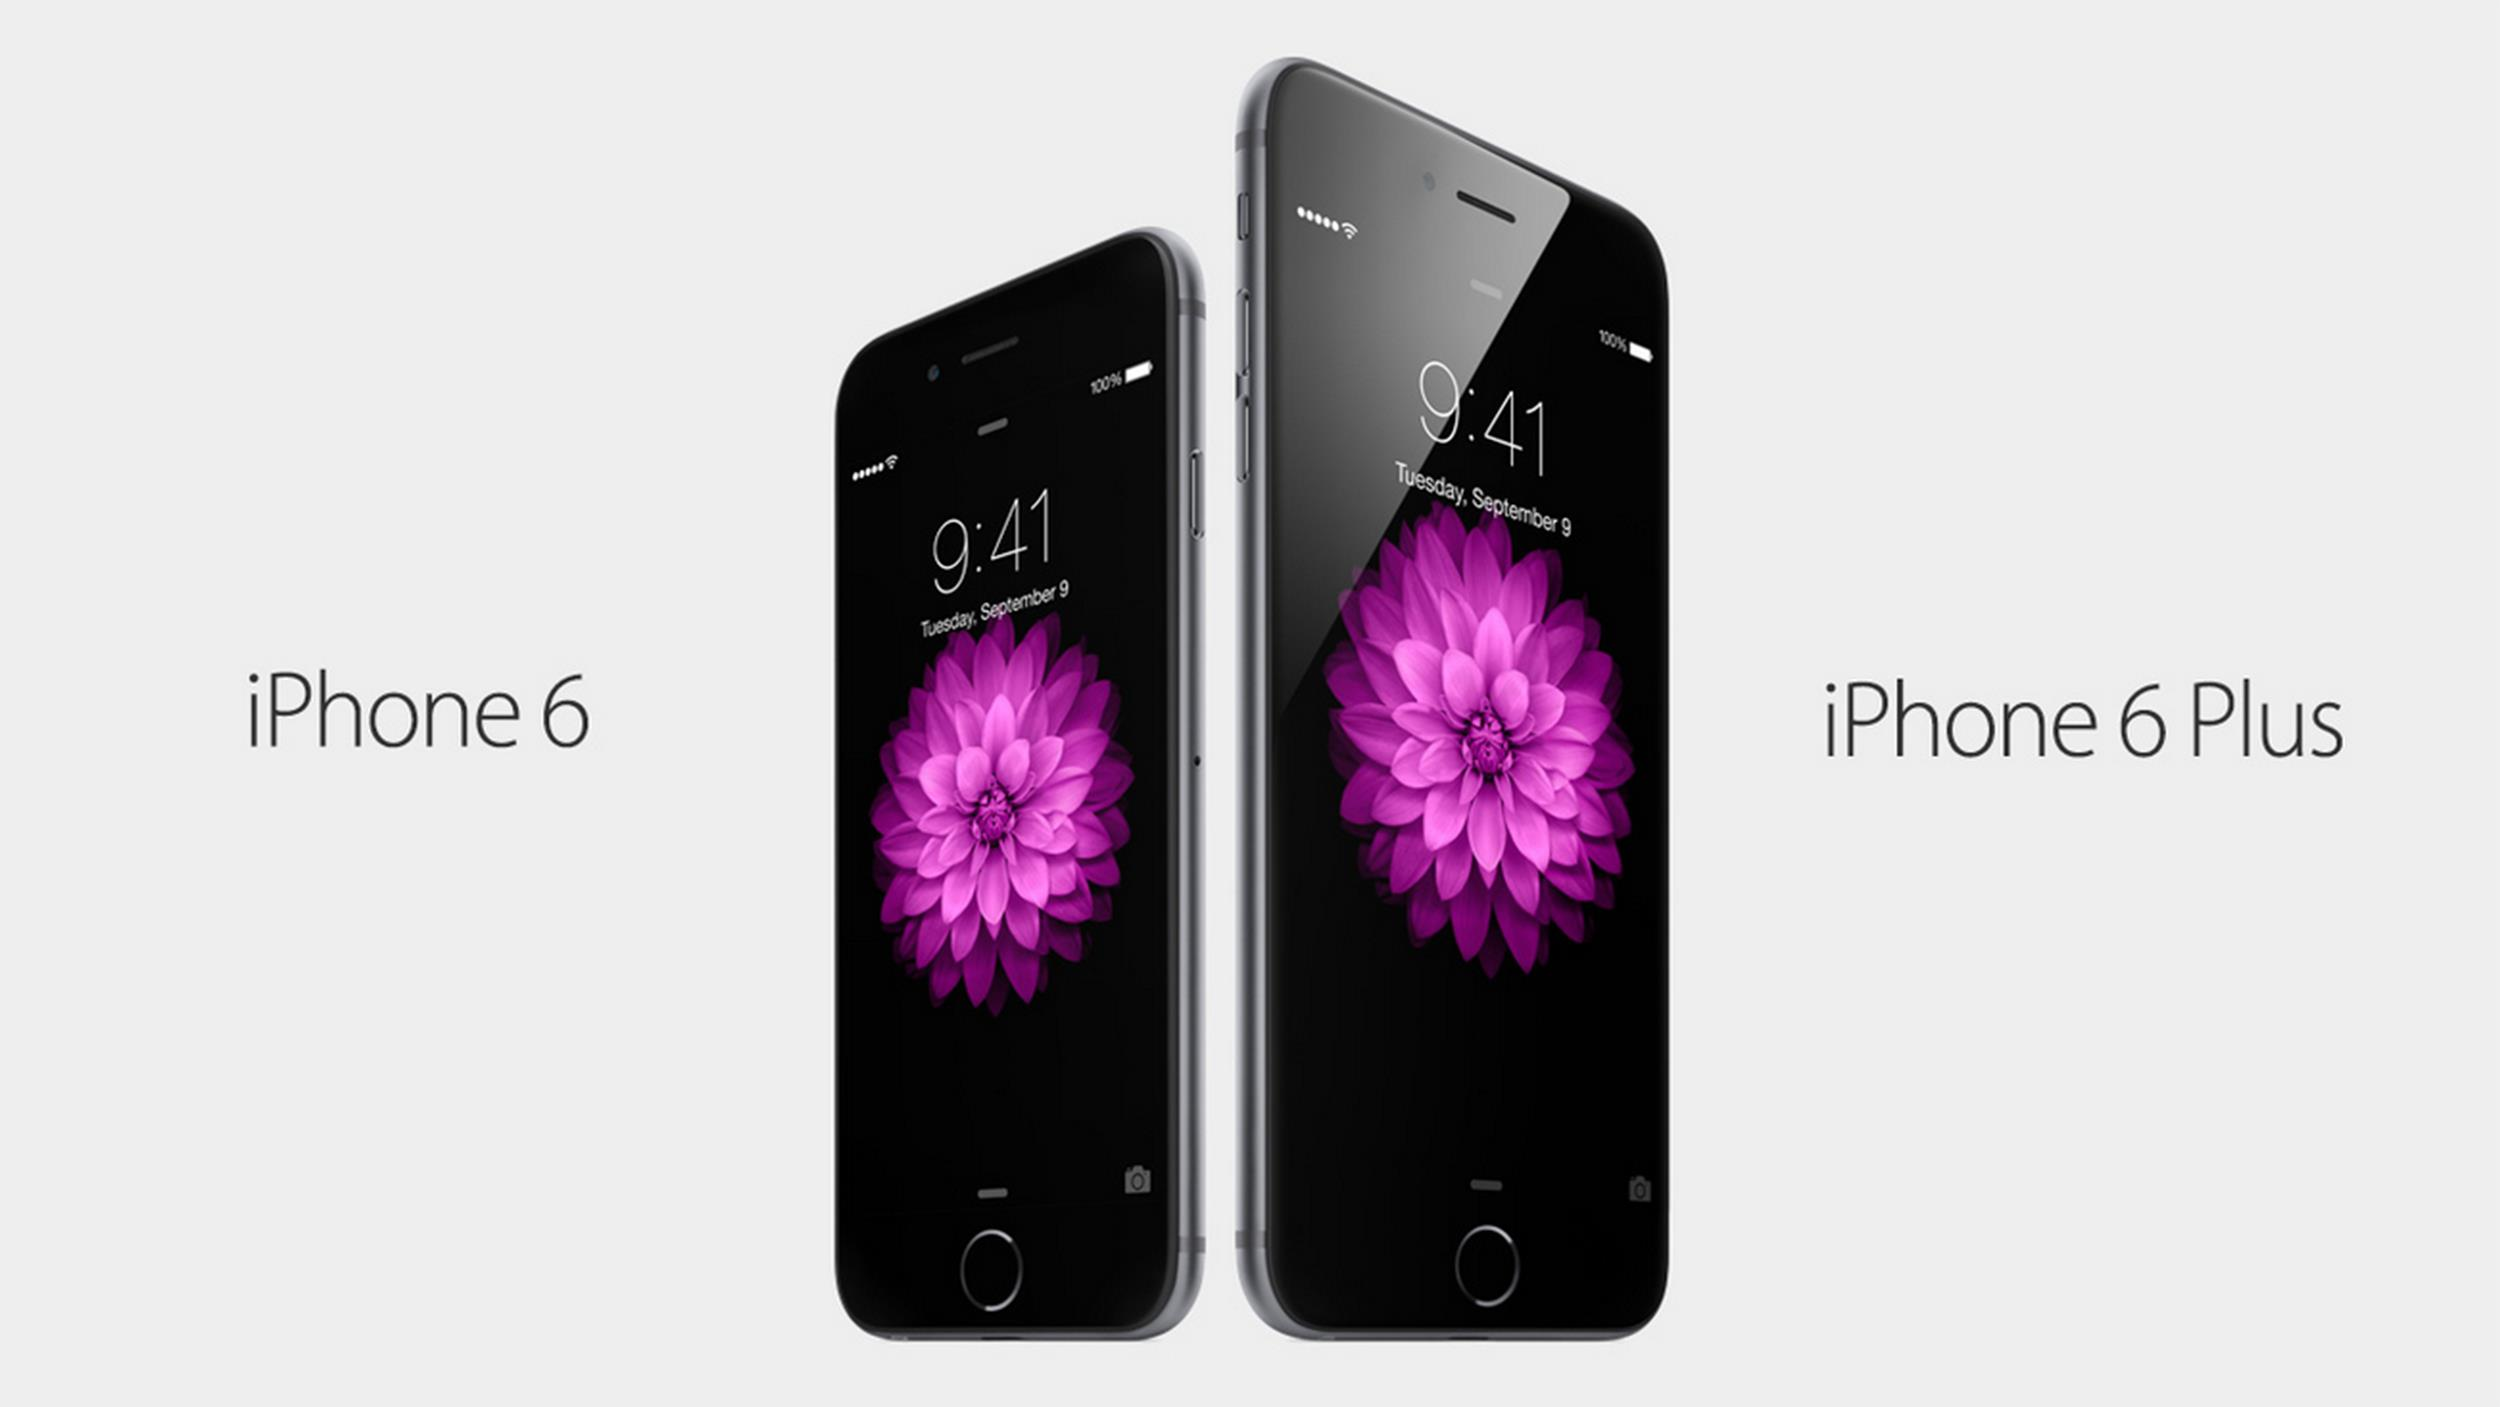 Apple Unveils Watch, iPhone 6 and iPhone 6 Plus - NBC News